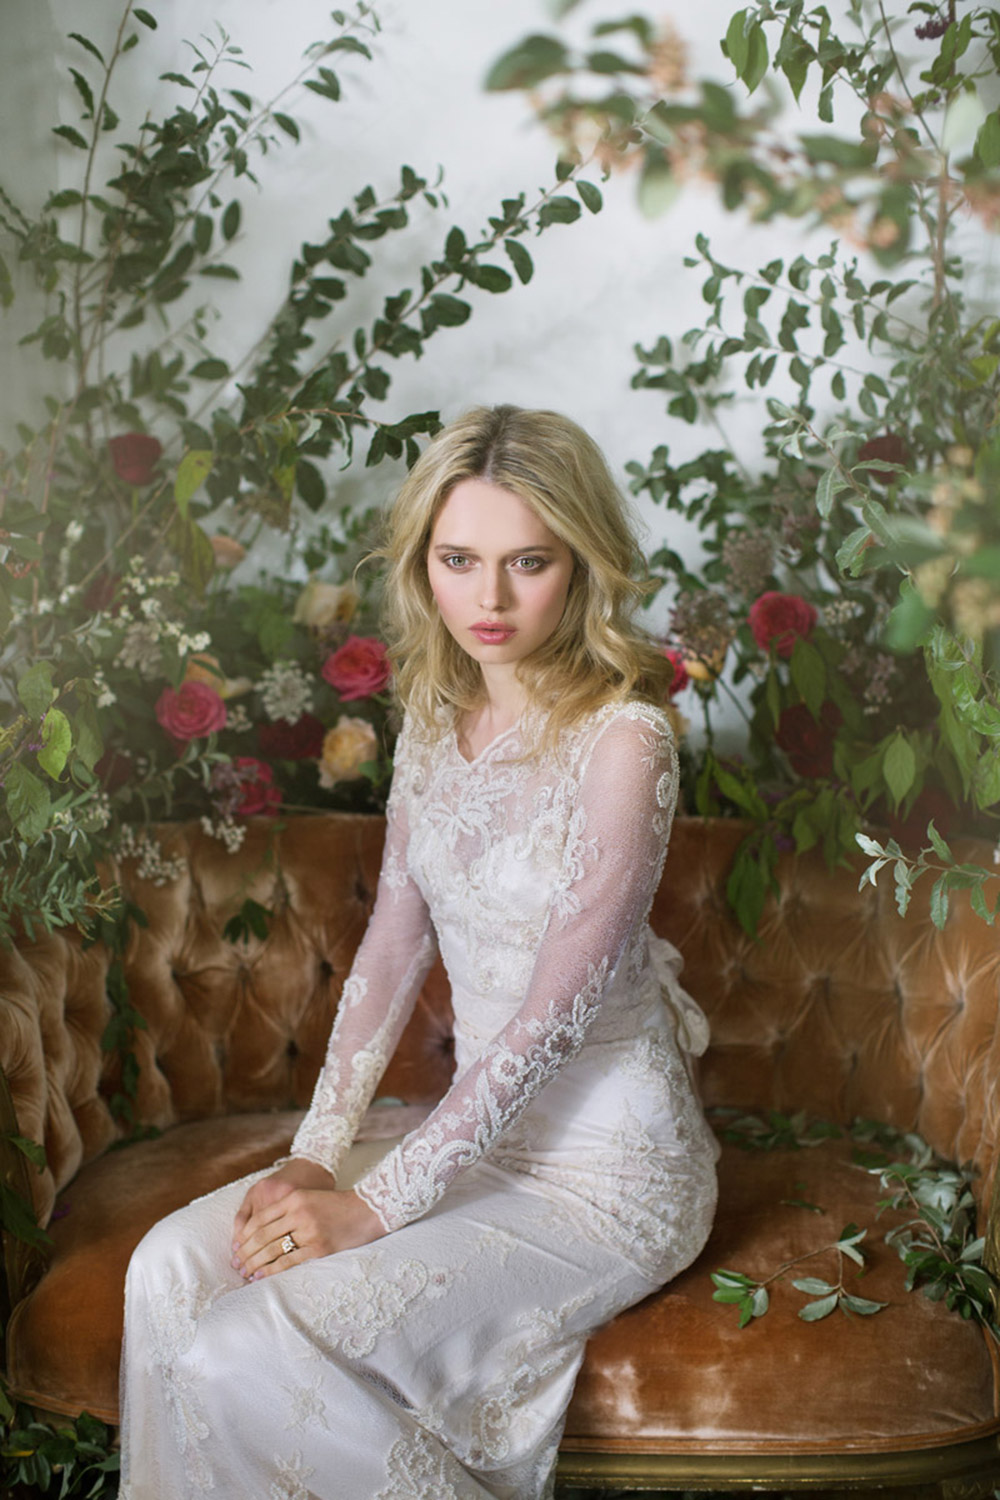 Pearle - Claire Pettibone Fall 2016 Bridal Collection. www.theweddingnotebook.com